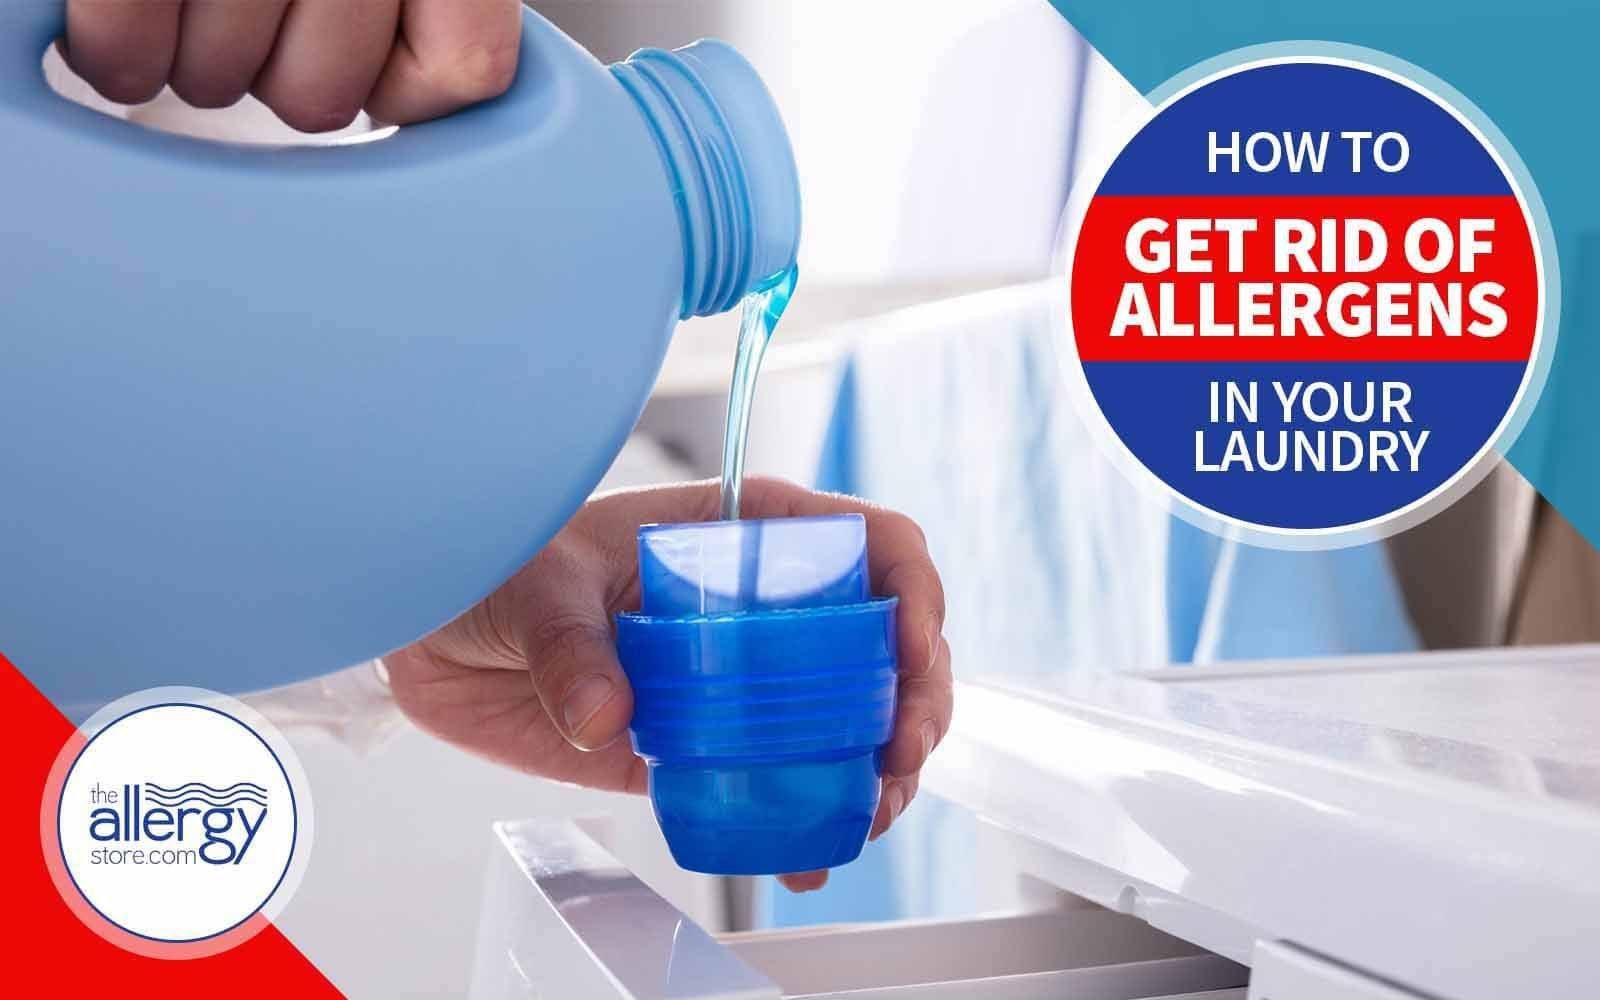 The best way to get rid of allergens in your laundry.